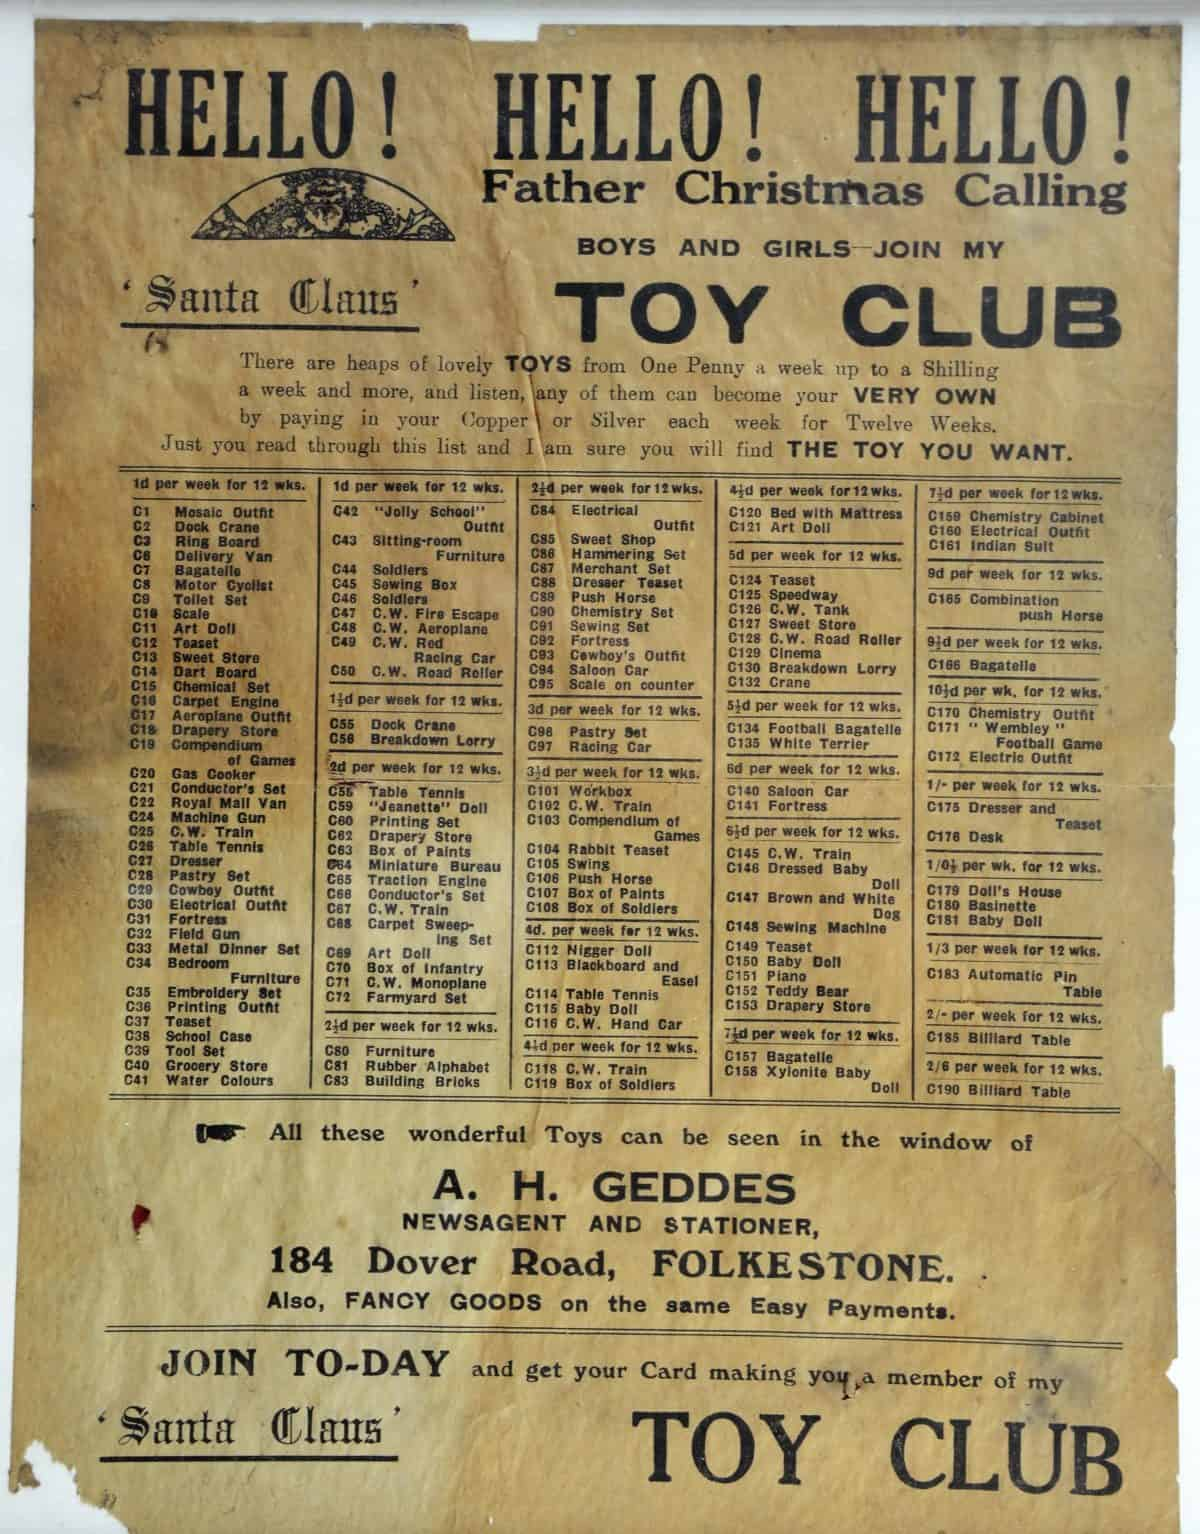 Cabinets of Curiosity 18b Santa Claus' Toy Club poster